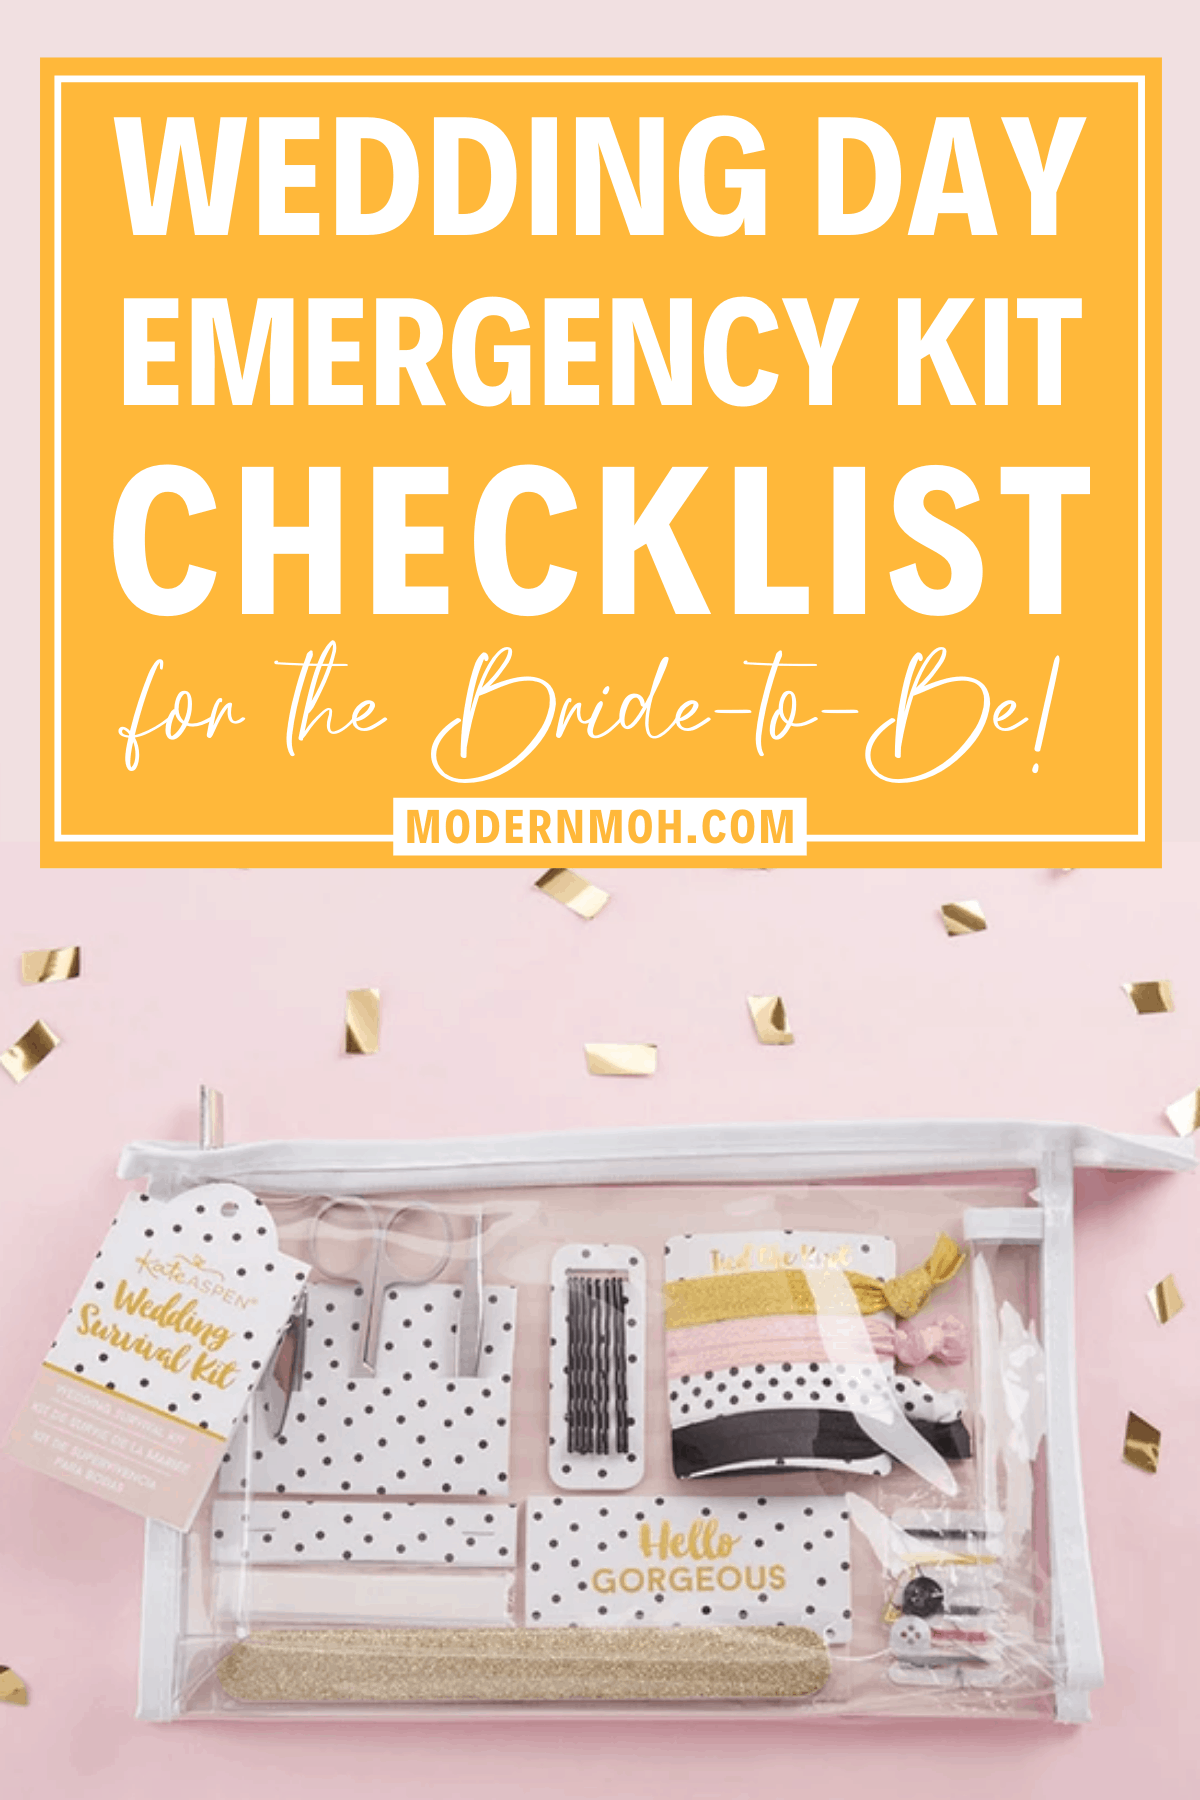 Wedding Day Emergency Kit: Because It's Better to Be Safe Than Sorry